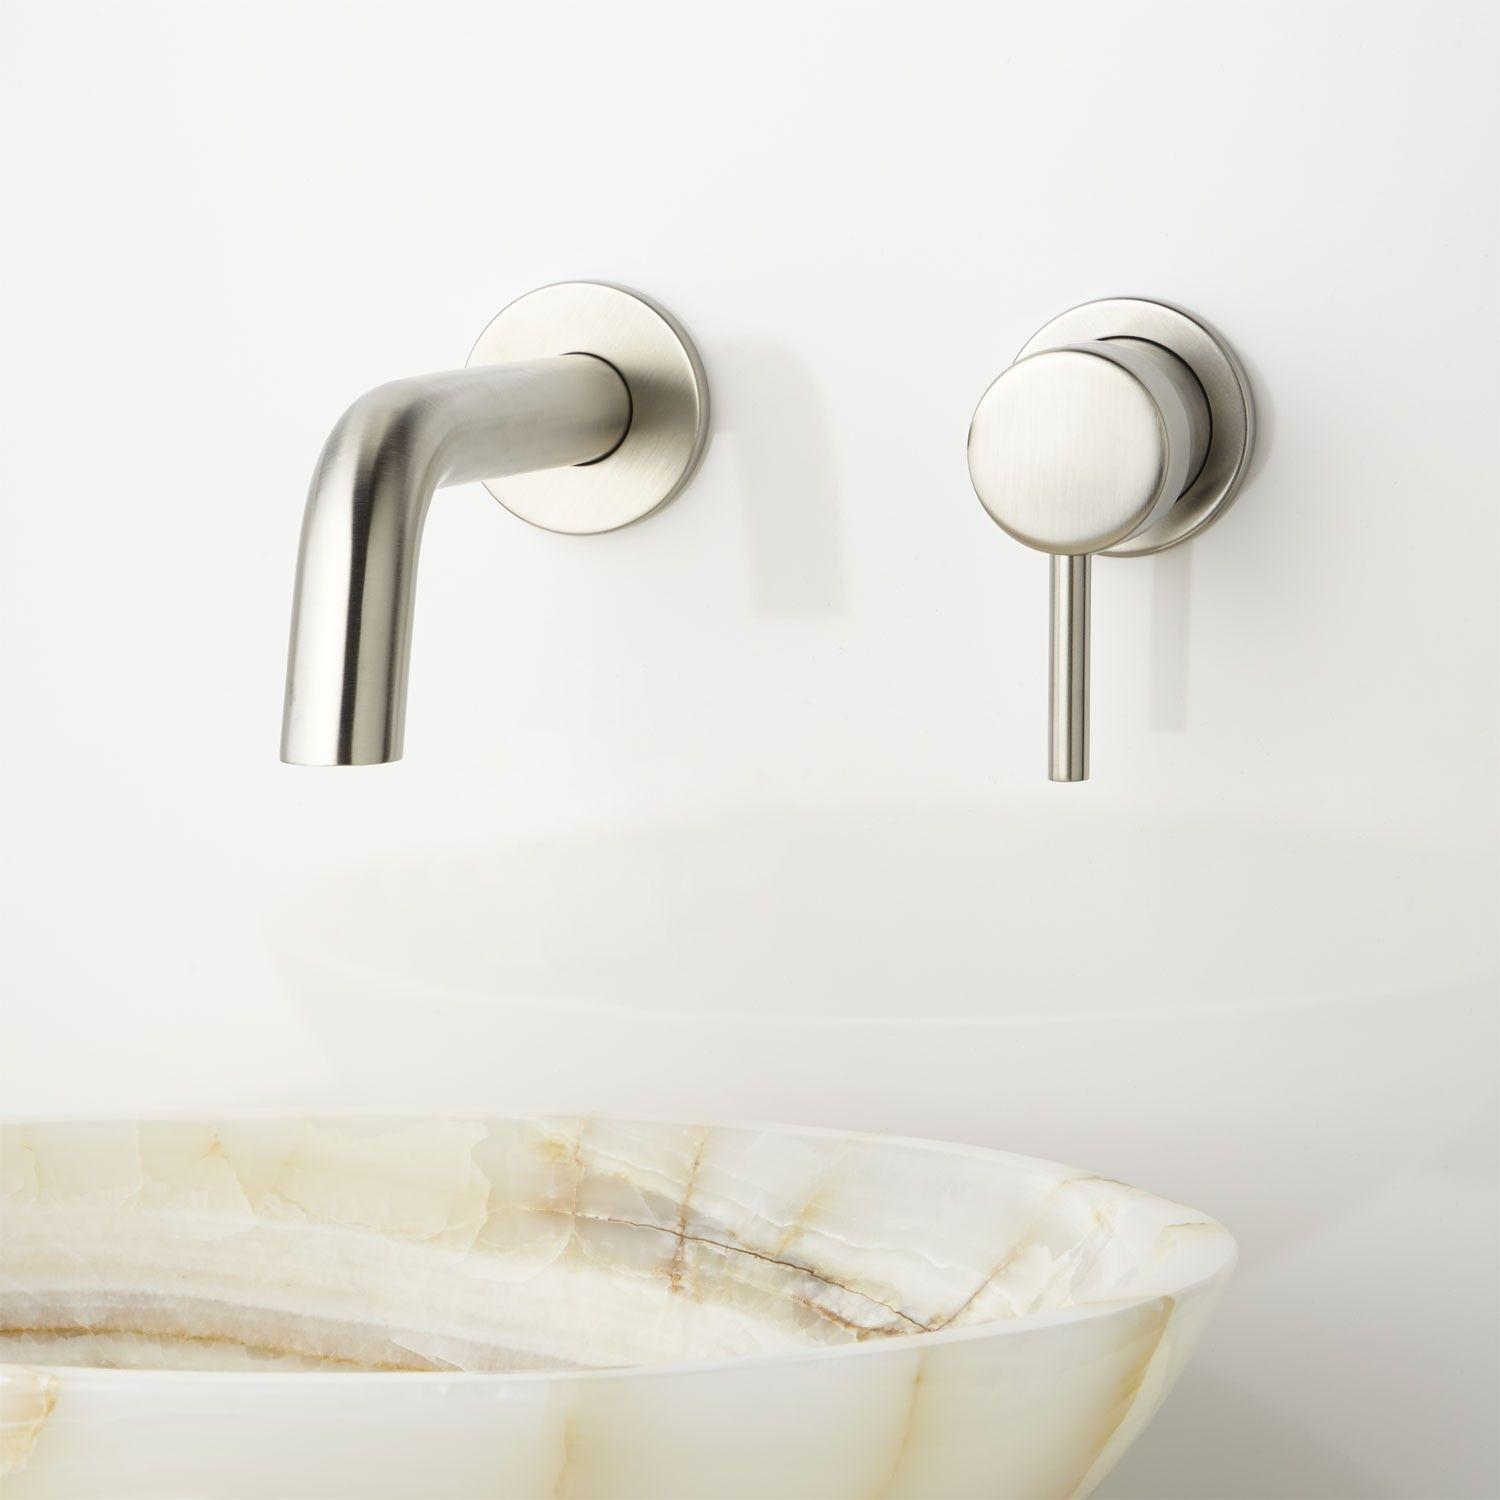 Rotunda Wall-Mount Bathroom Faucet | Faucets | Pinterest | Bathroom ...